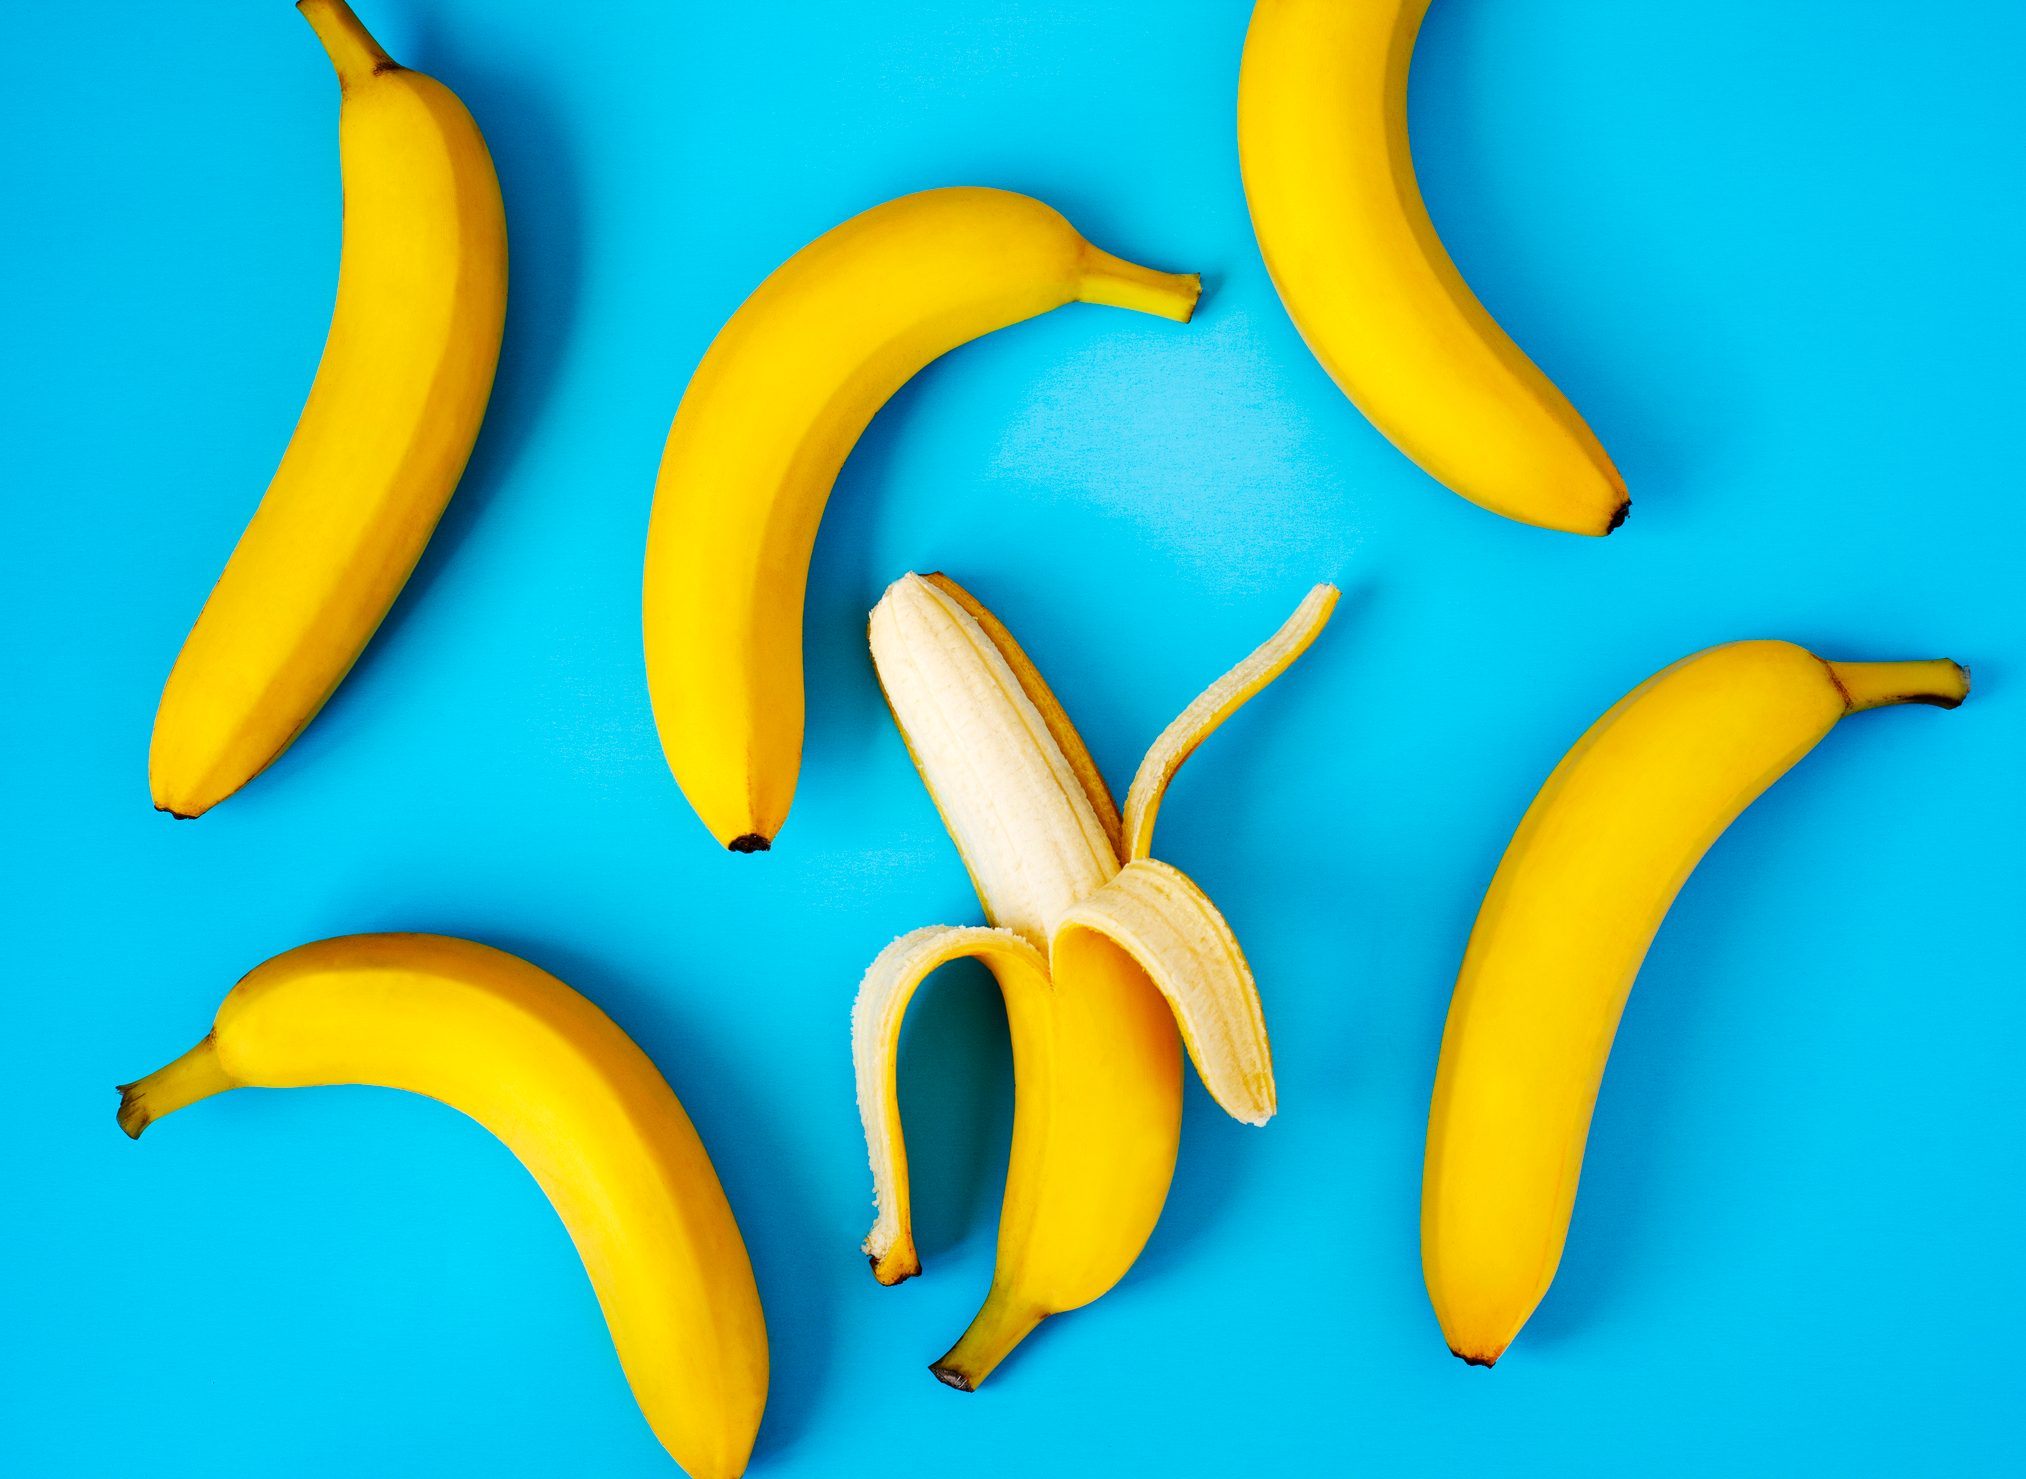 Ripe bananas on blue background